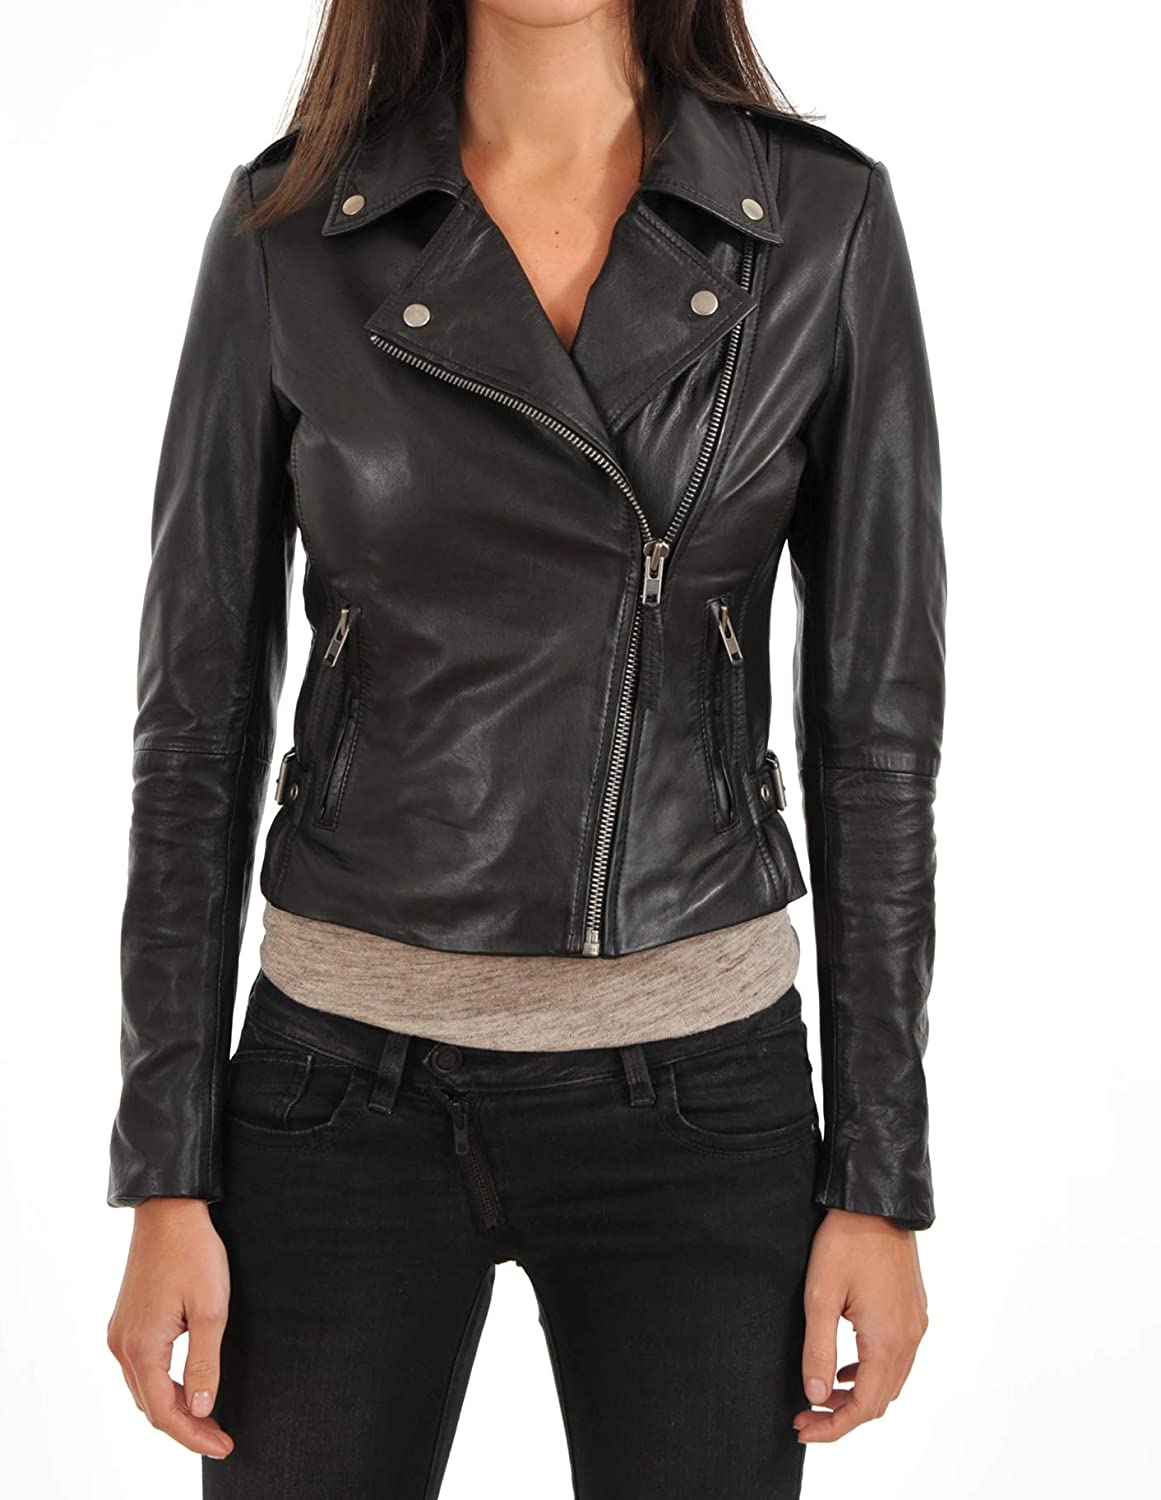 KAINAT Lambskin Leather Craft Women's Biker Jacket 195